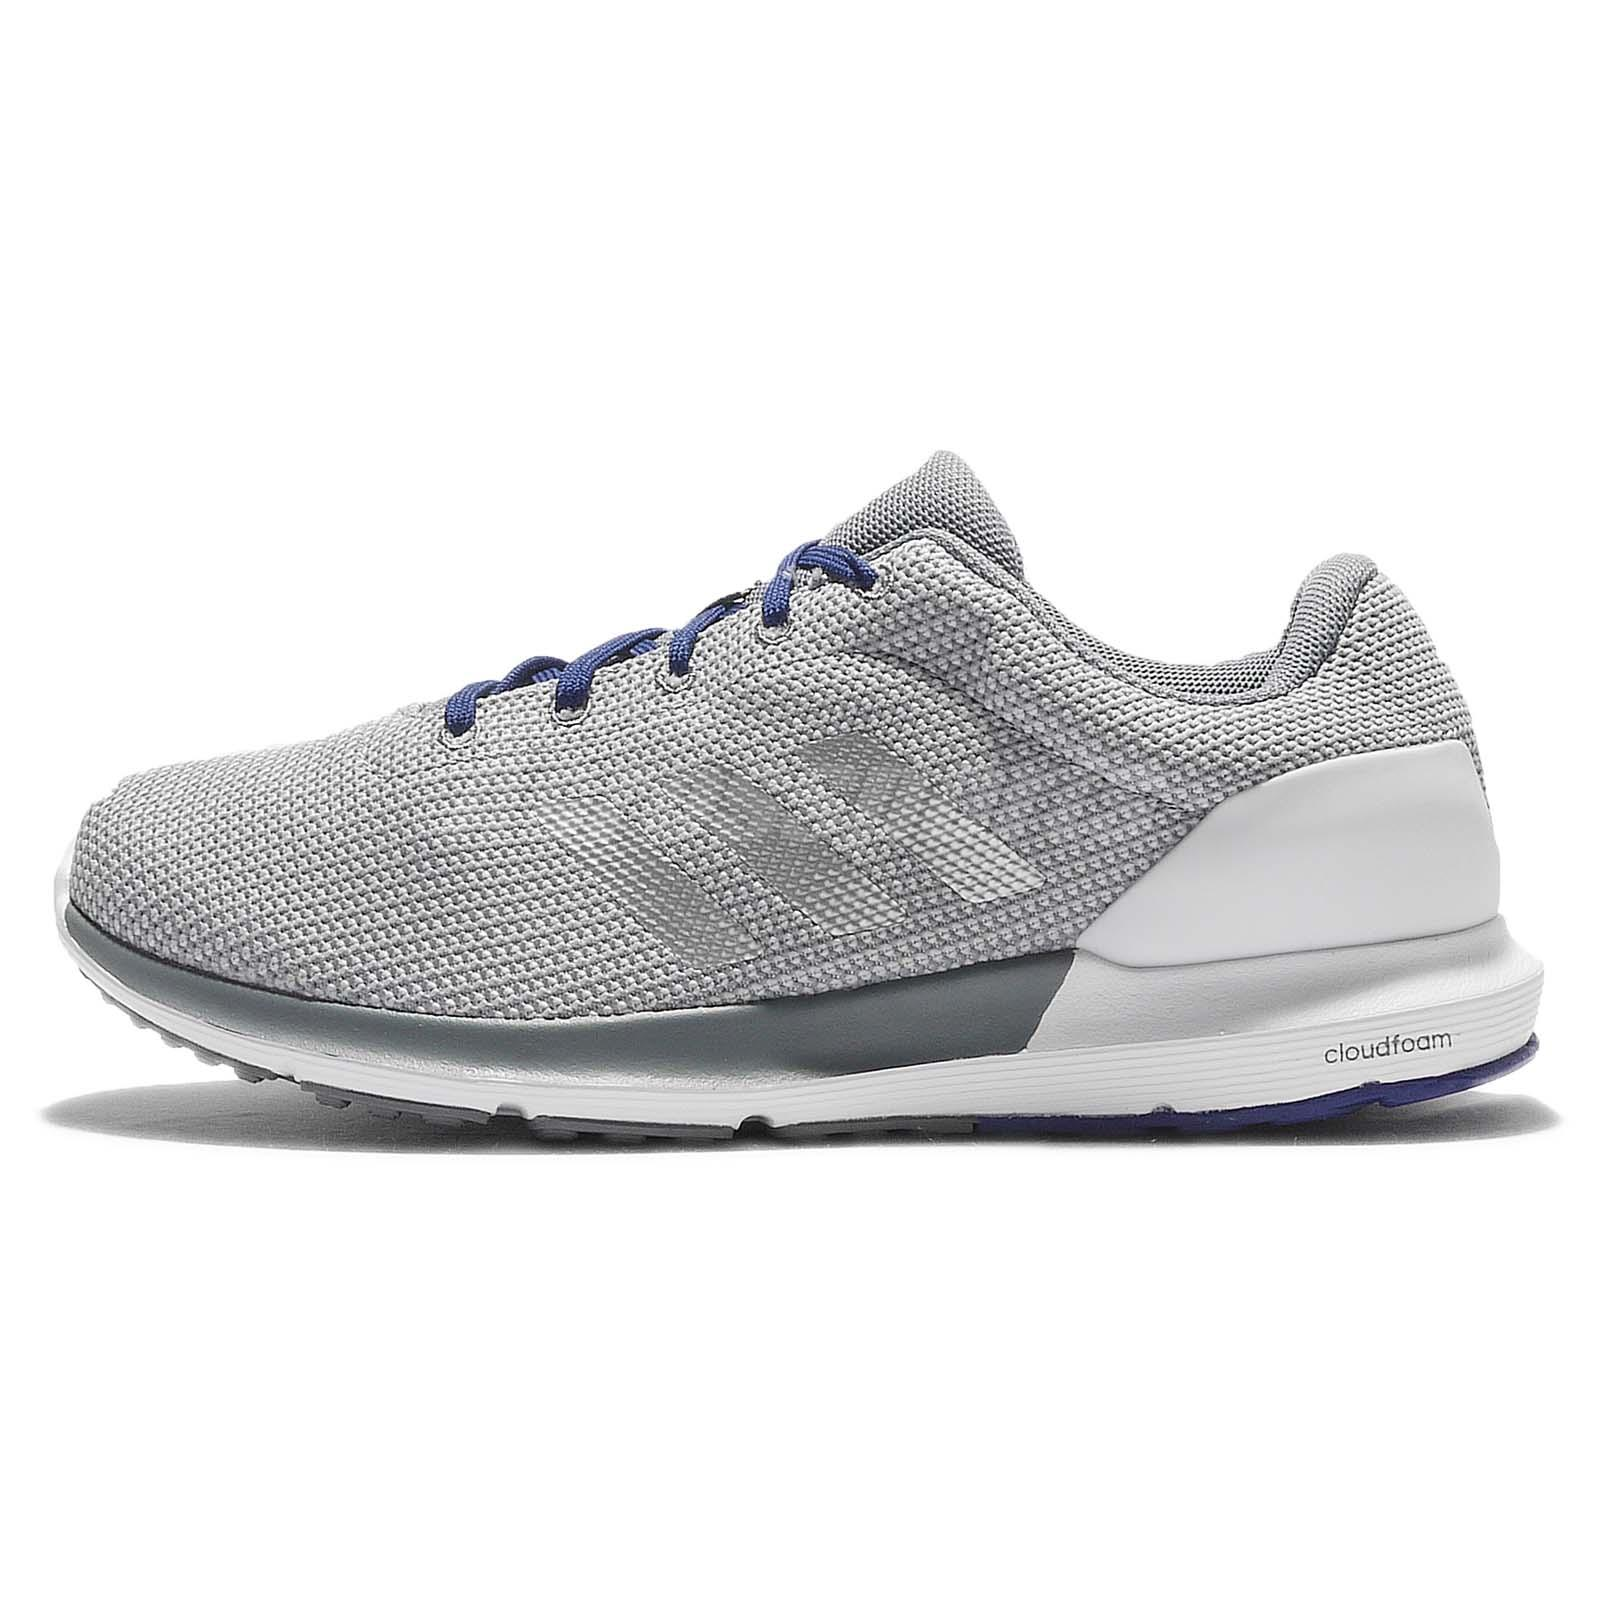 adidas Cosmic M Grey Silver White Mens Running Shoes Sneakers Trainers AQ2186